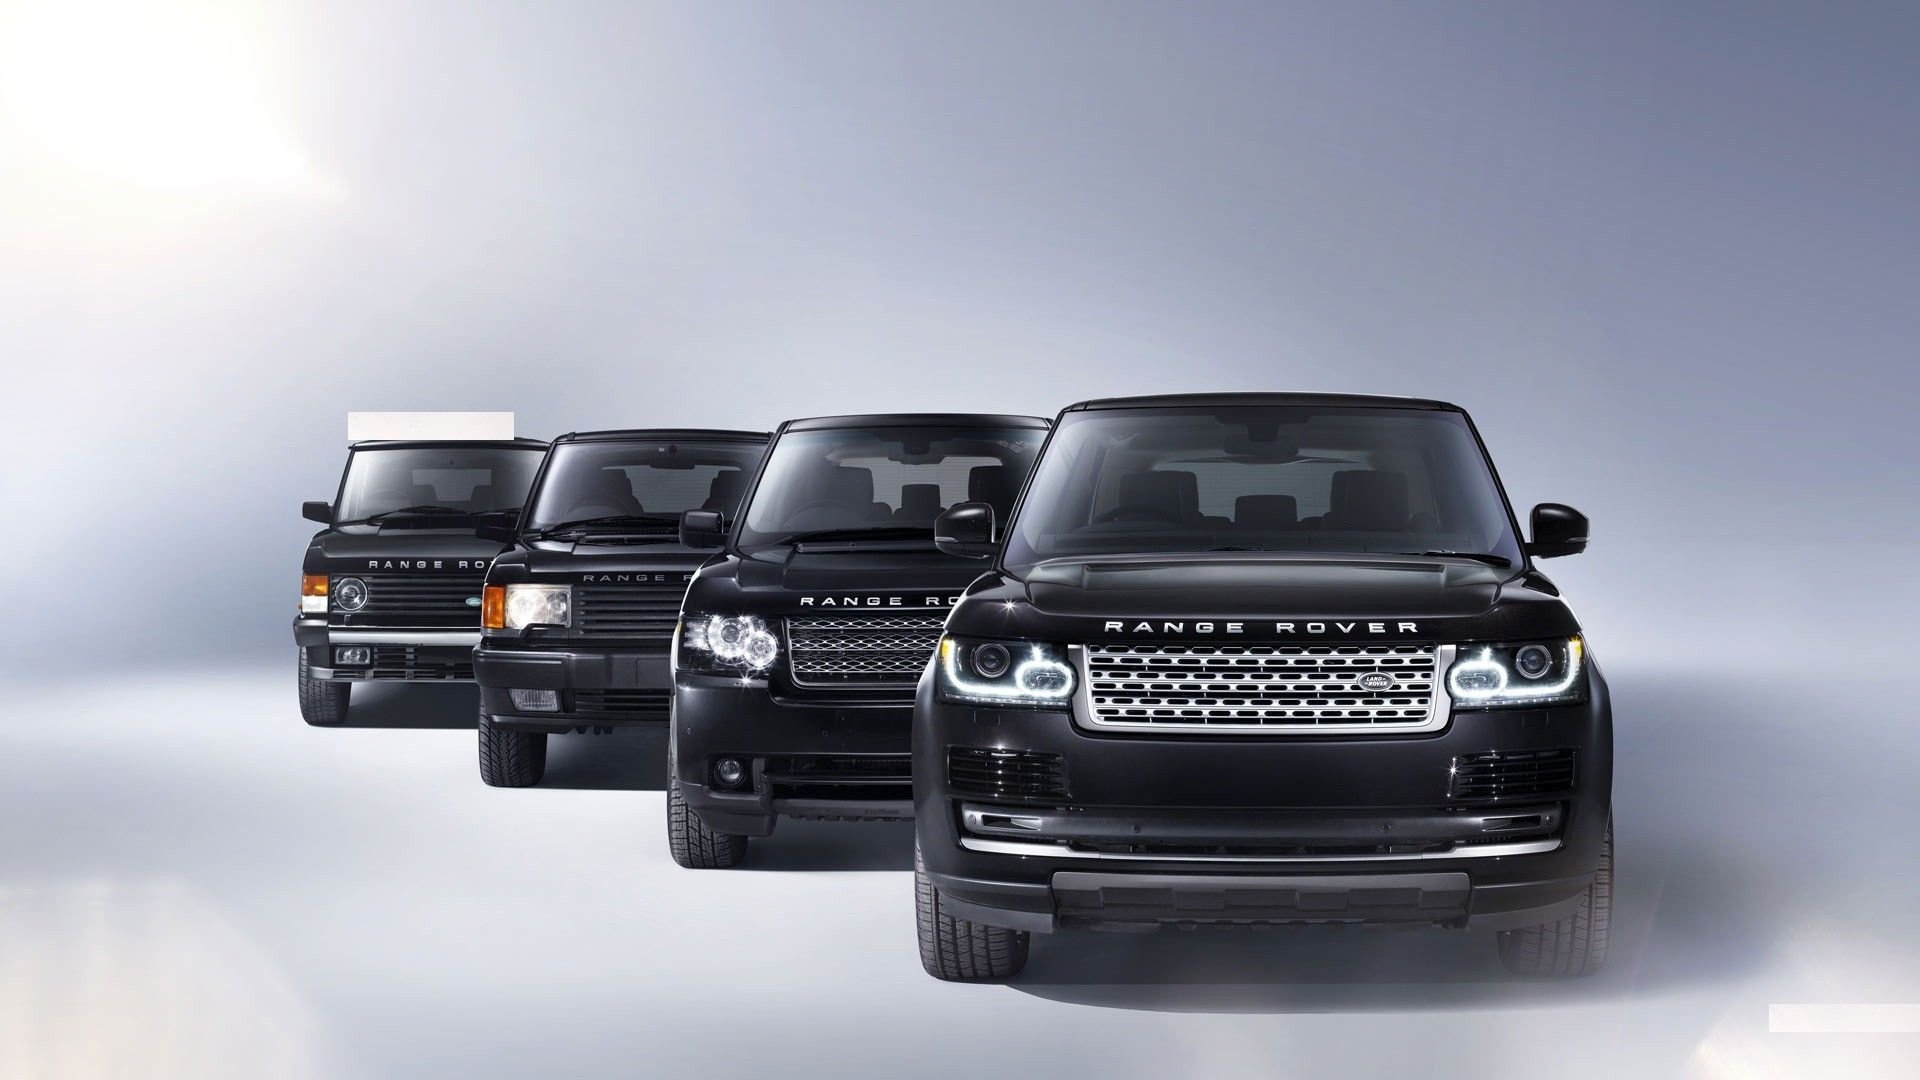 New Hd Range Rover Wallpapers Range Rover Background Images On This Month